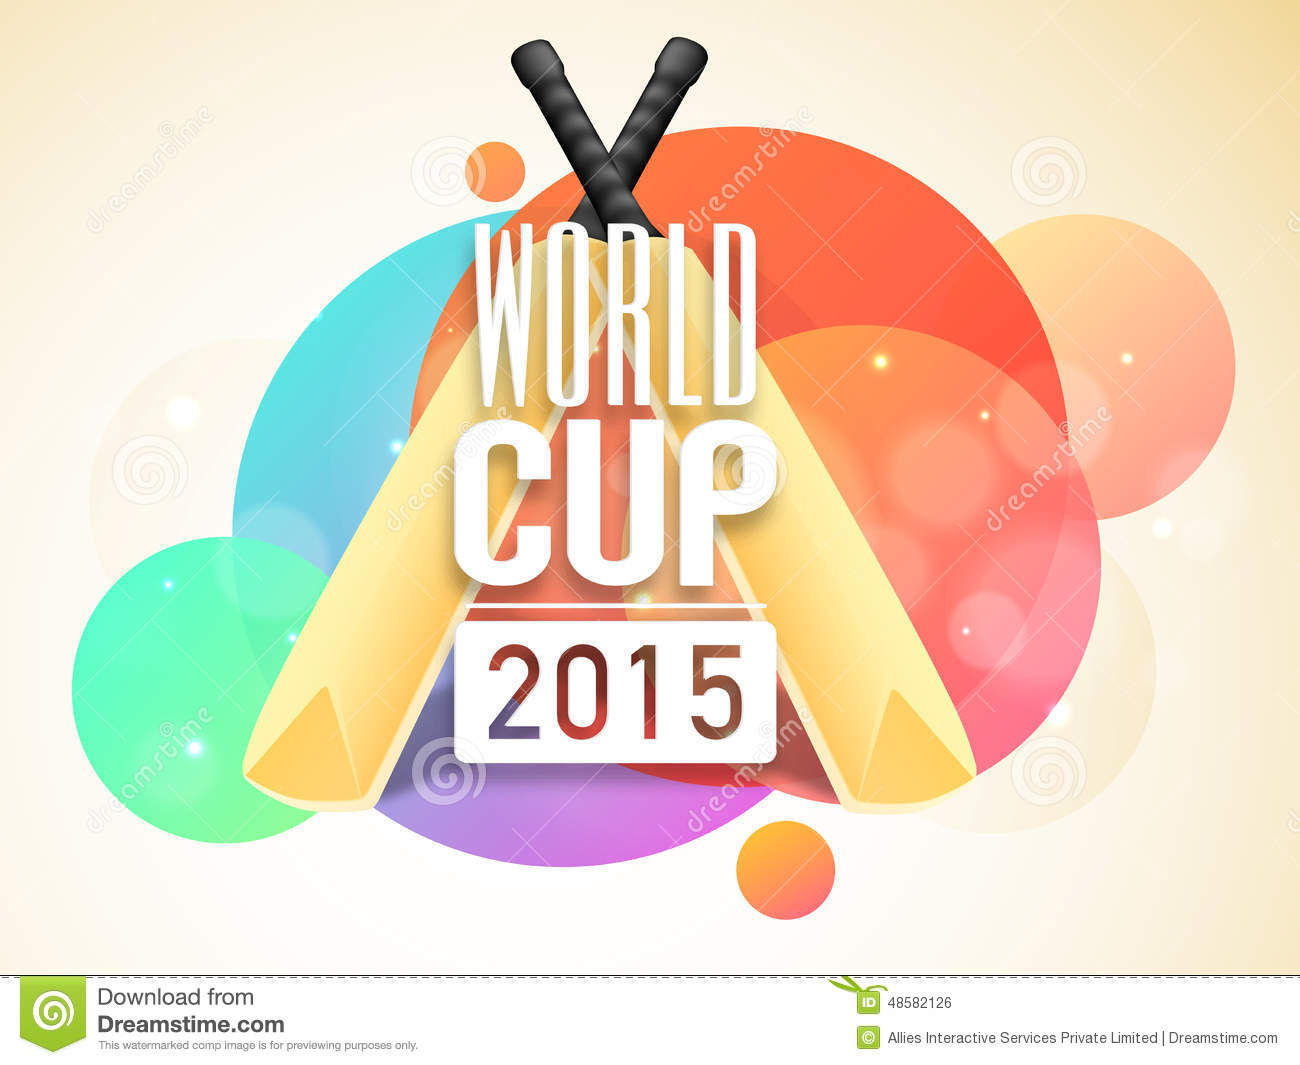 Poster design 2015 - Poster Or Banner Design For World Cup 2015 Royalty Free Stock Image